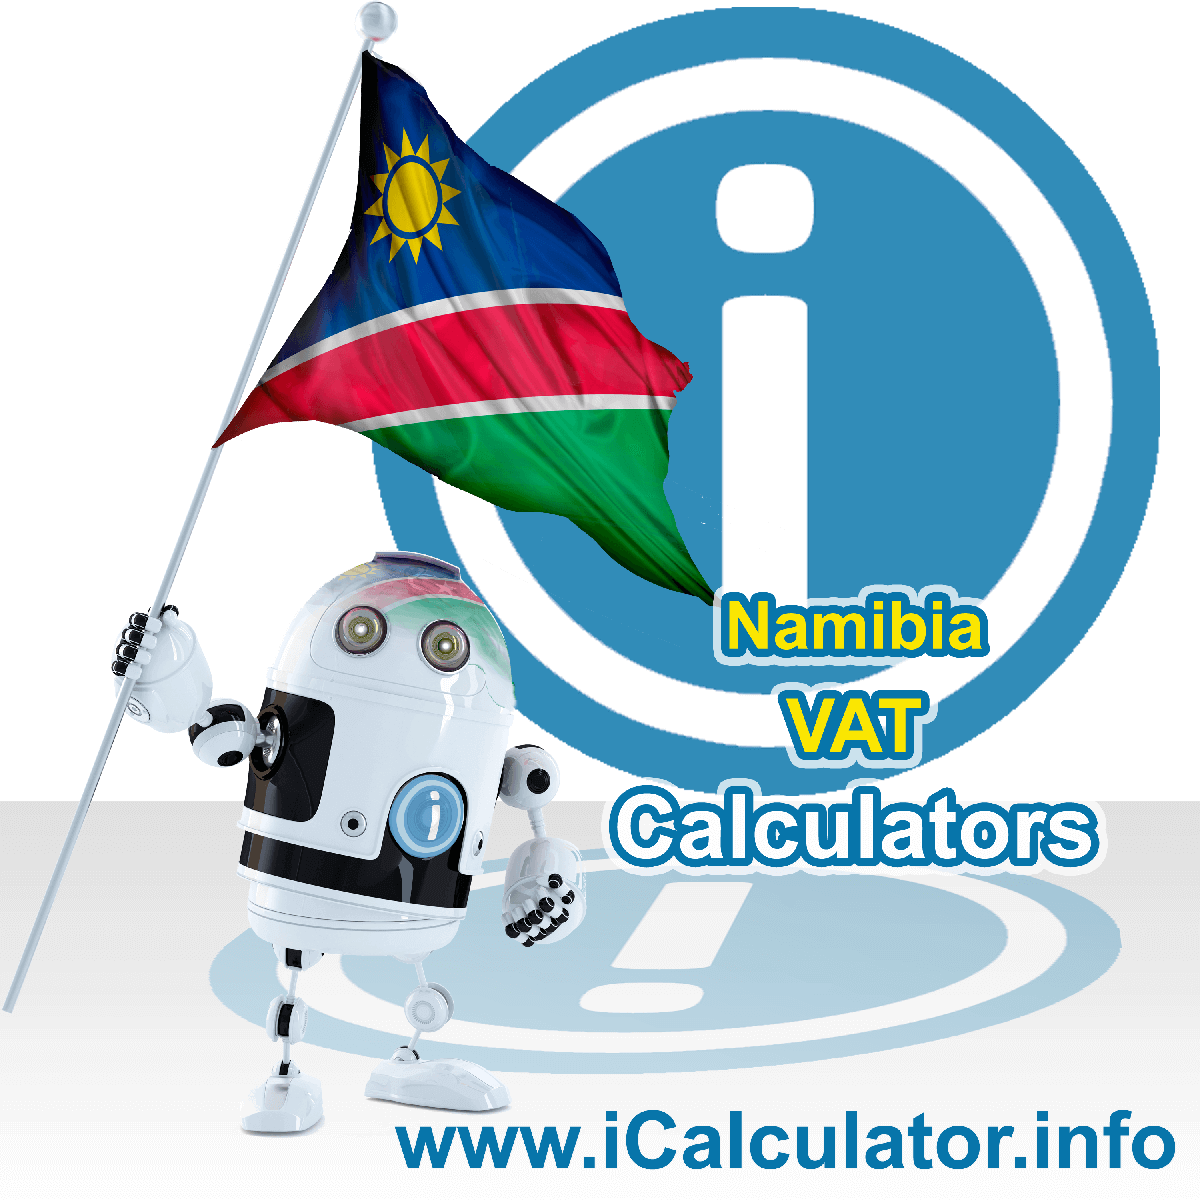 Namibia VAT Calculator. This image shows the Namibia flag and information relating to the VAT formula used for calculating Value Added Tax in Namibia using the Namibia VAT Calculator in 2020